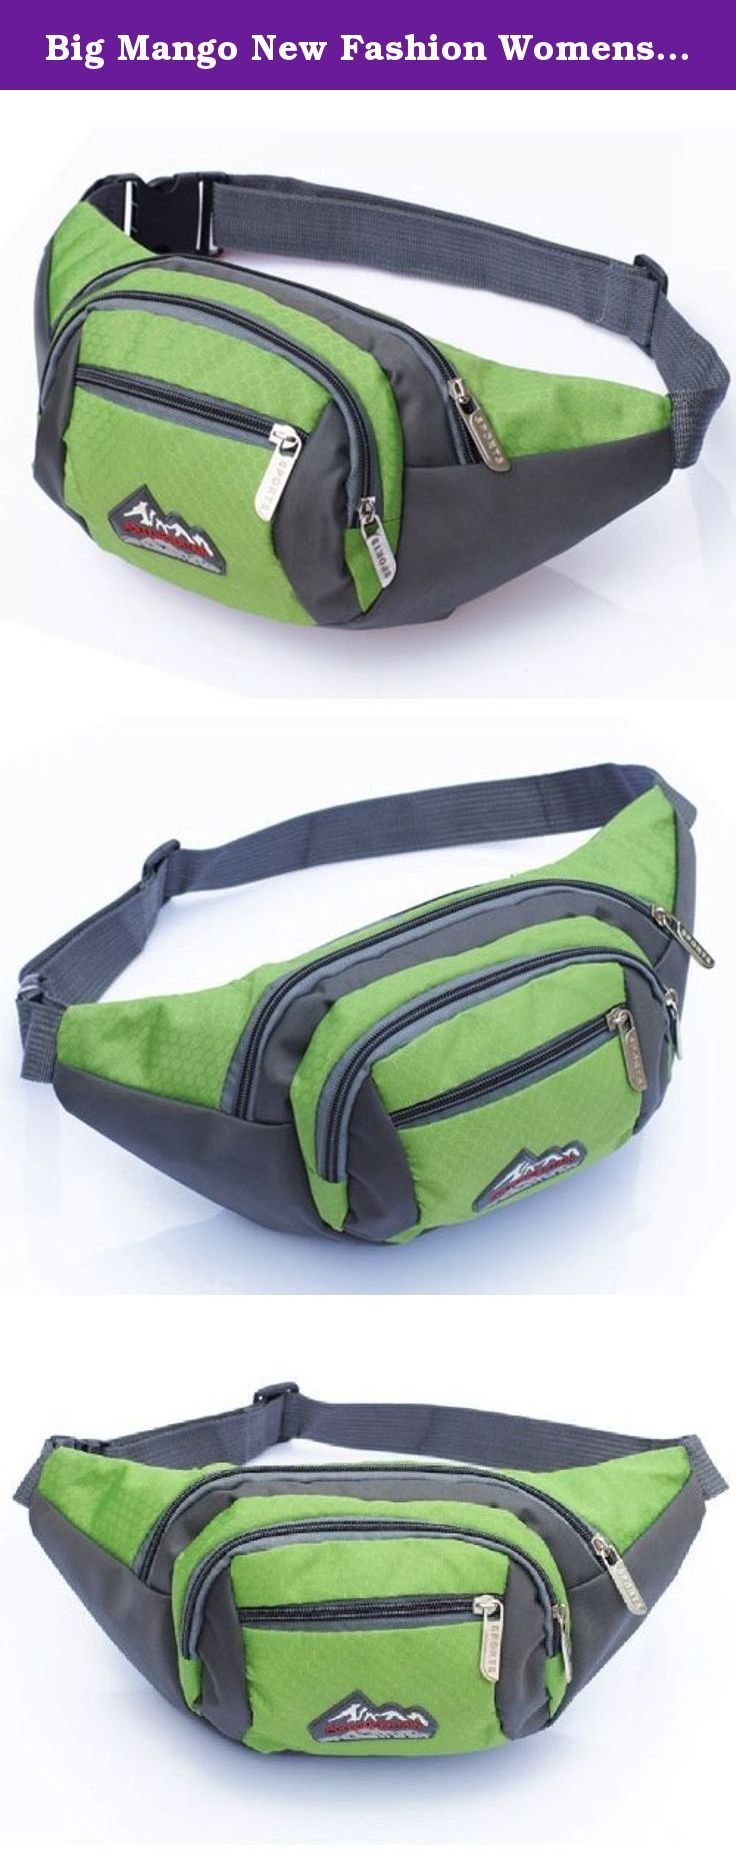 Big Mango New Fashion Womens Sports Bag 4 Zipper Pockets Waist Bag Fanny Chest Pack with Cell Phone Pouch & Automatic Umbrella & Small Personal Stuffs for Both Men and Women Use. Good quality nylon cloth and fine workmanship,great bag for carrying personal stuffs,such as wallets,keys,cell phone and walkman,automatic umbrella,best organizer for travlling and sports.The multiple zippers design makes it neat and keep your things at hand.Outdoor activities and leisure use.